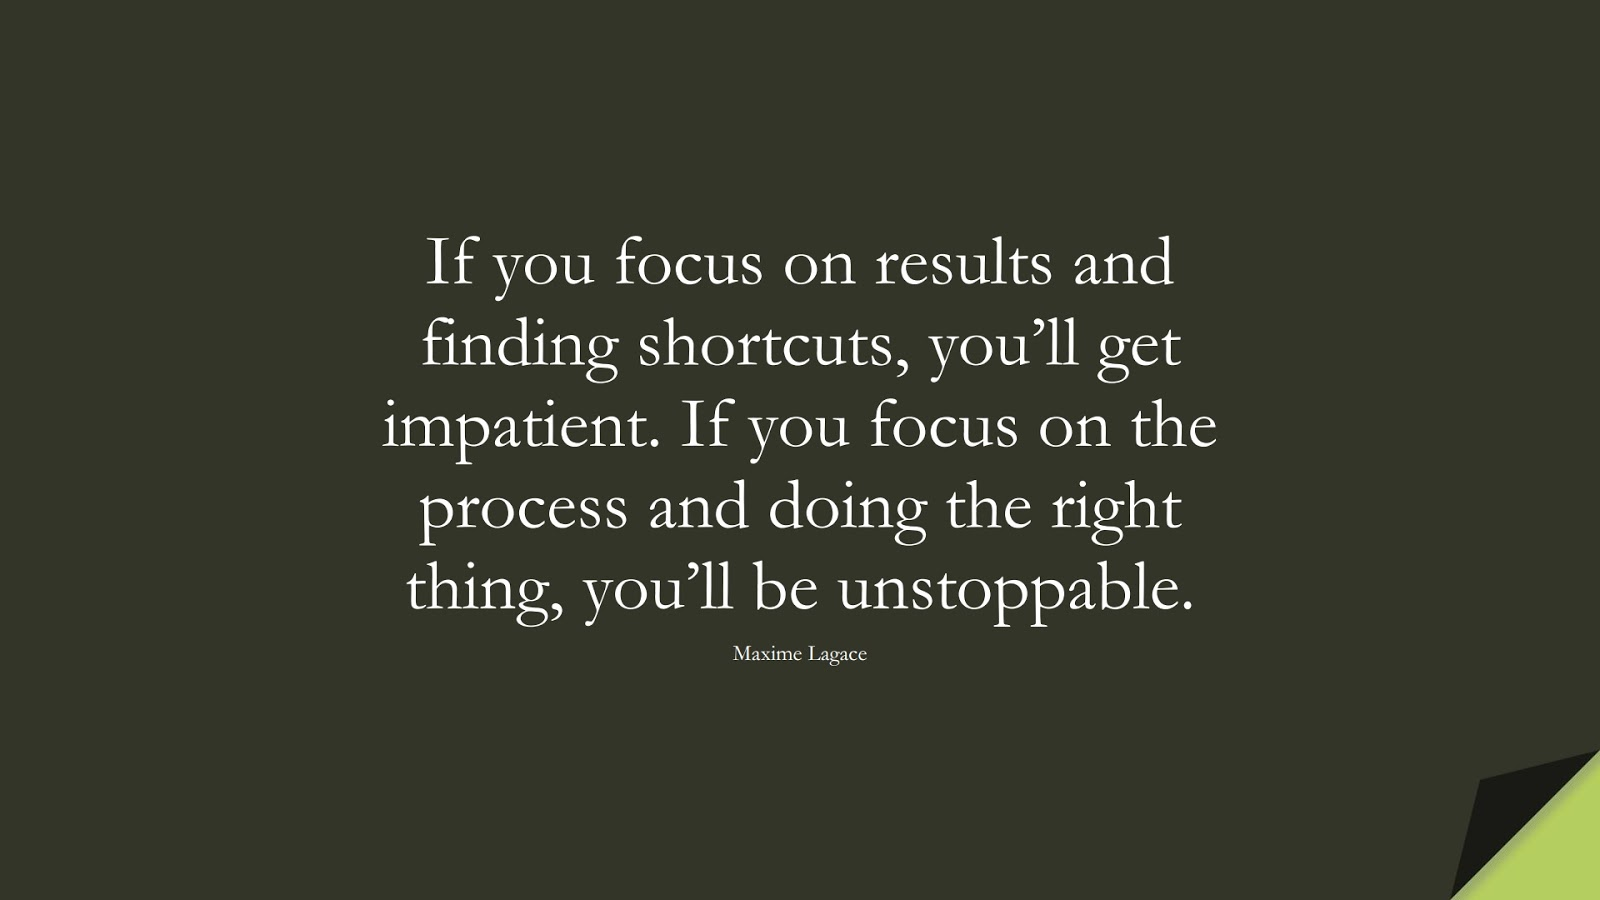 If you focus on results and finding shortcuts, you'll get impatient. If you focus on the process and doing the right thing, you'll be unstoppable. (Maxime Lagace);  #PerseveranceQuotes